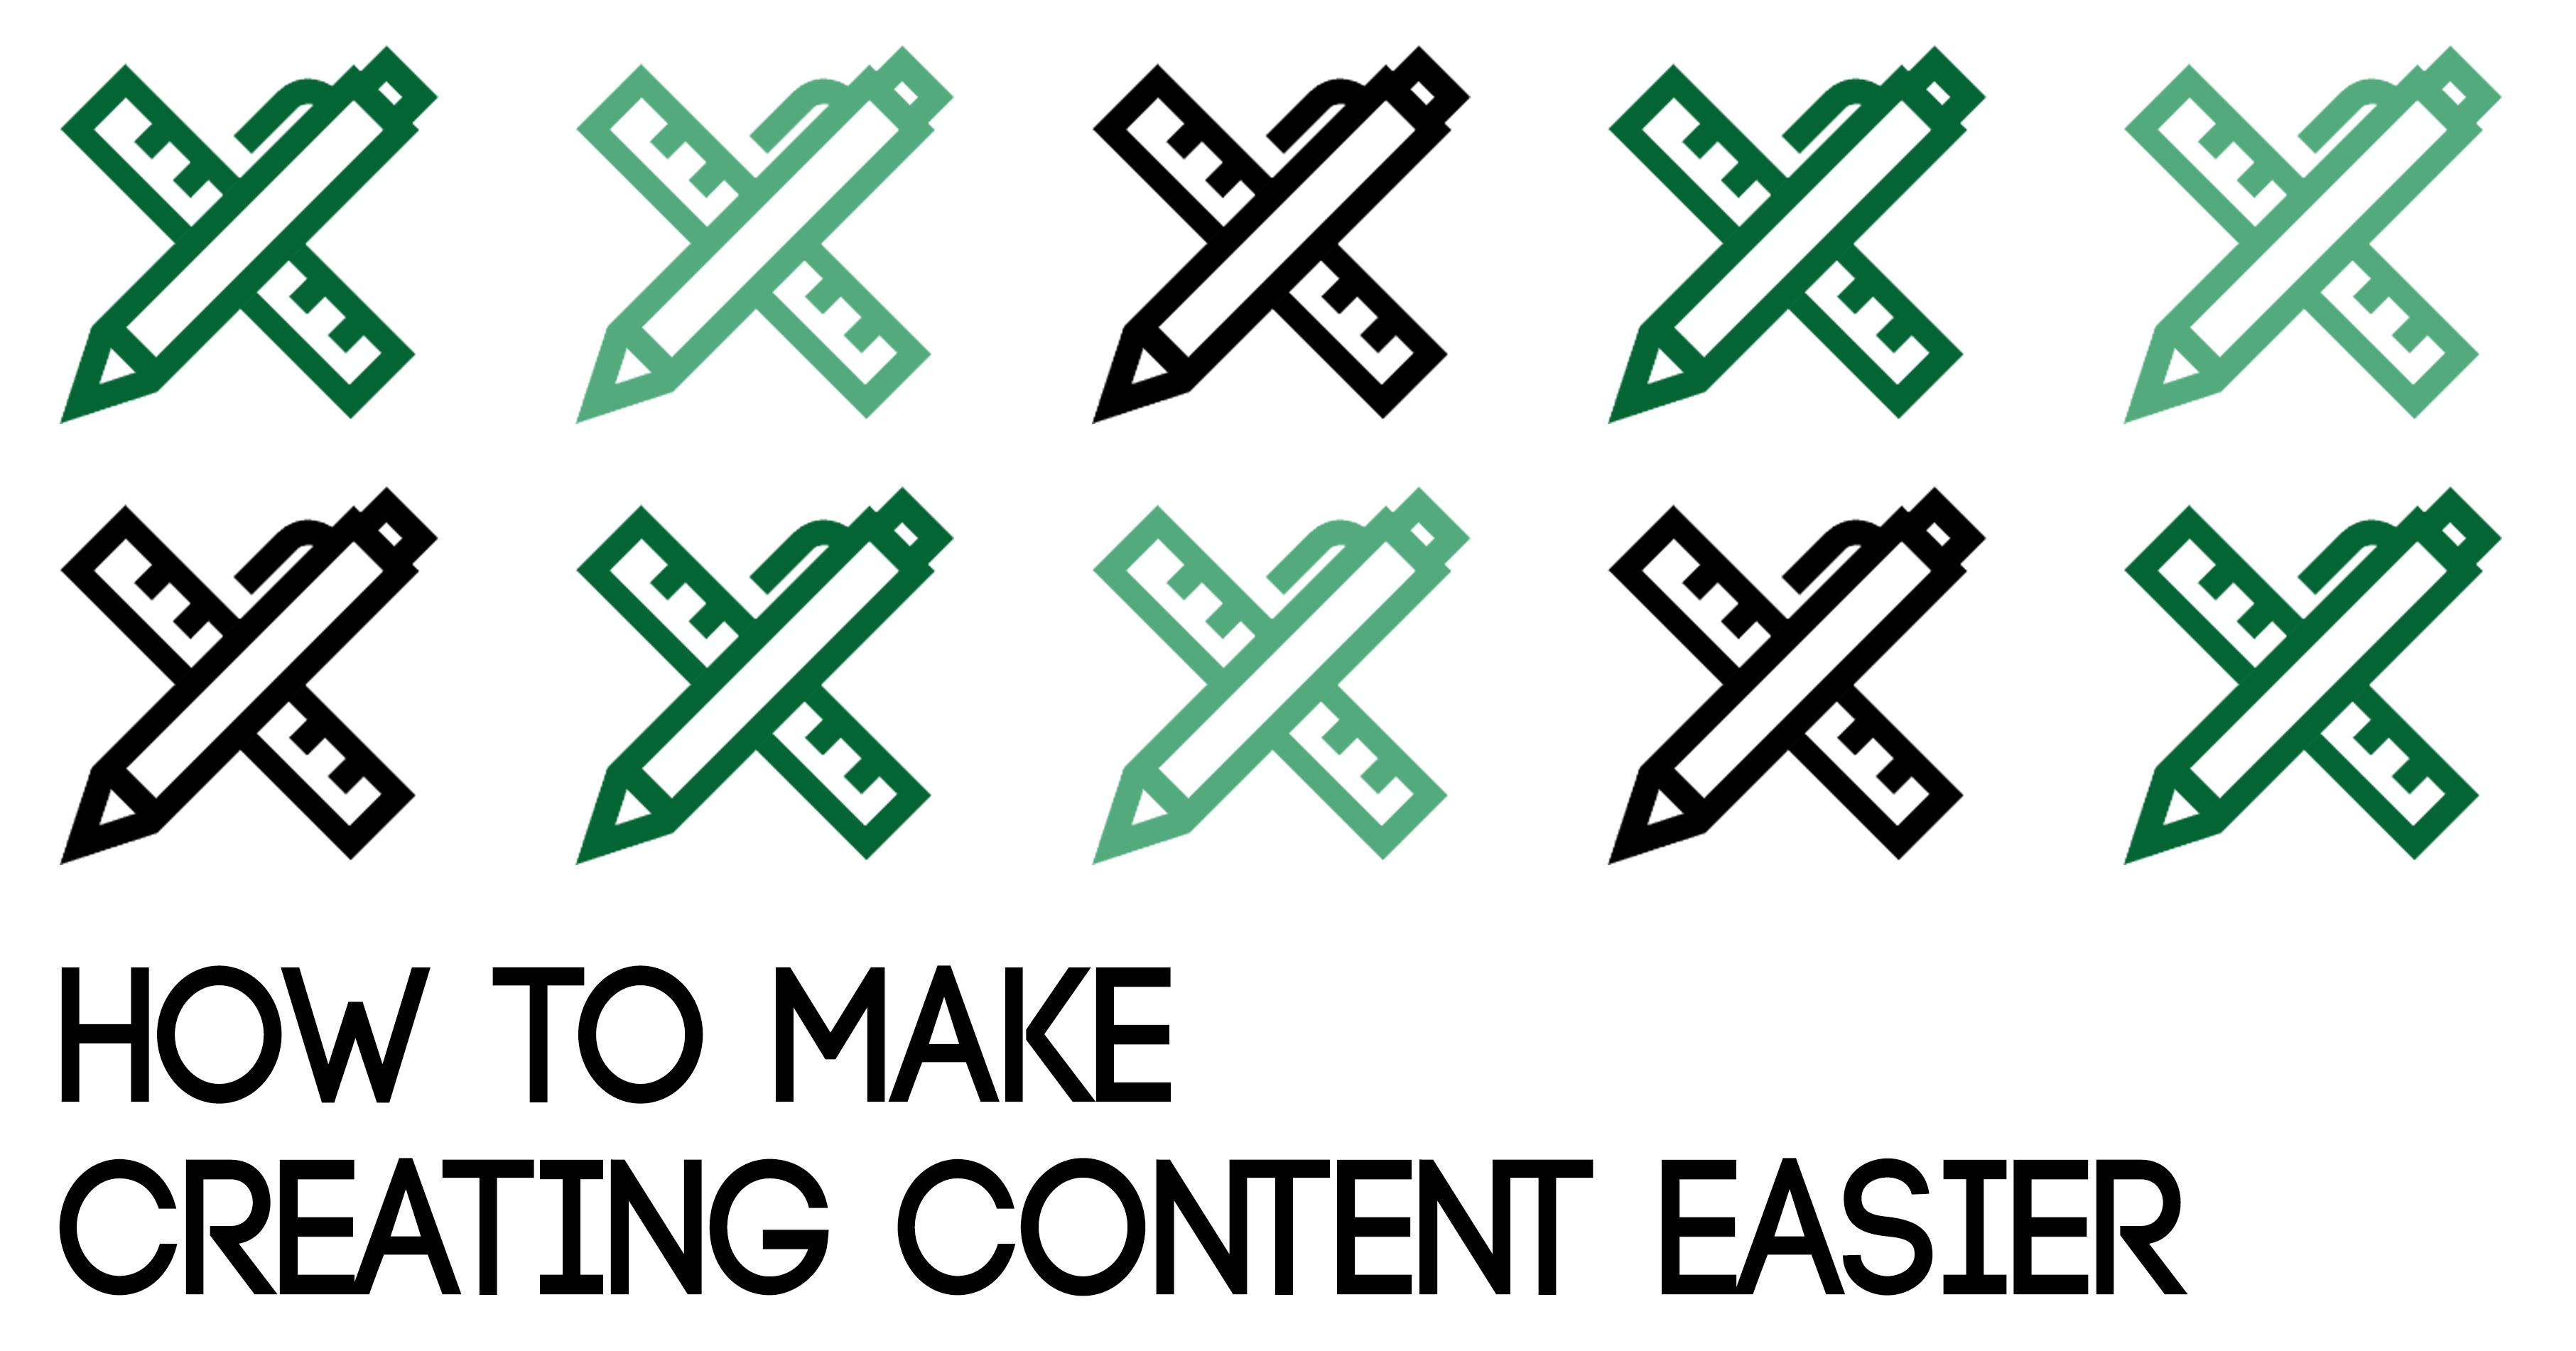 How to Make Creating Content Easier